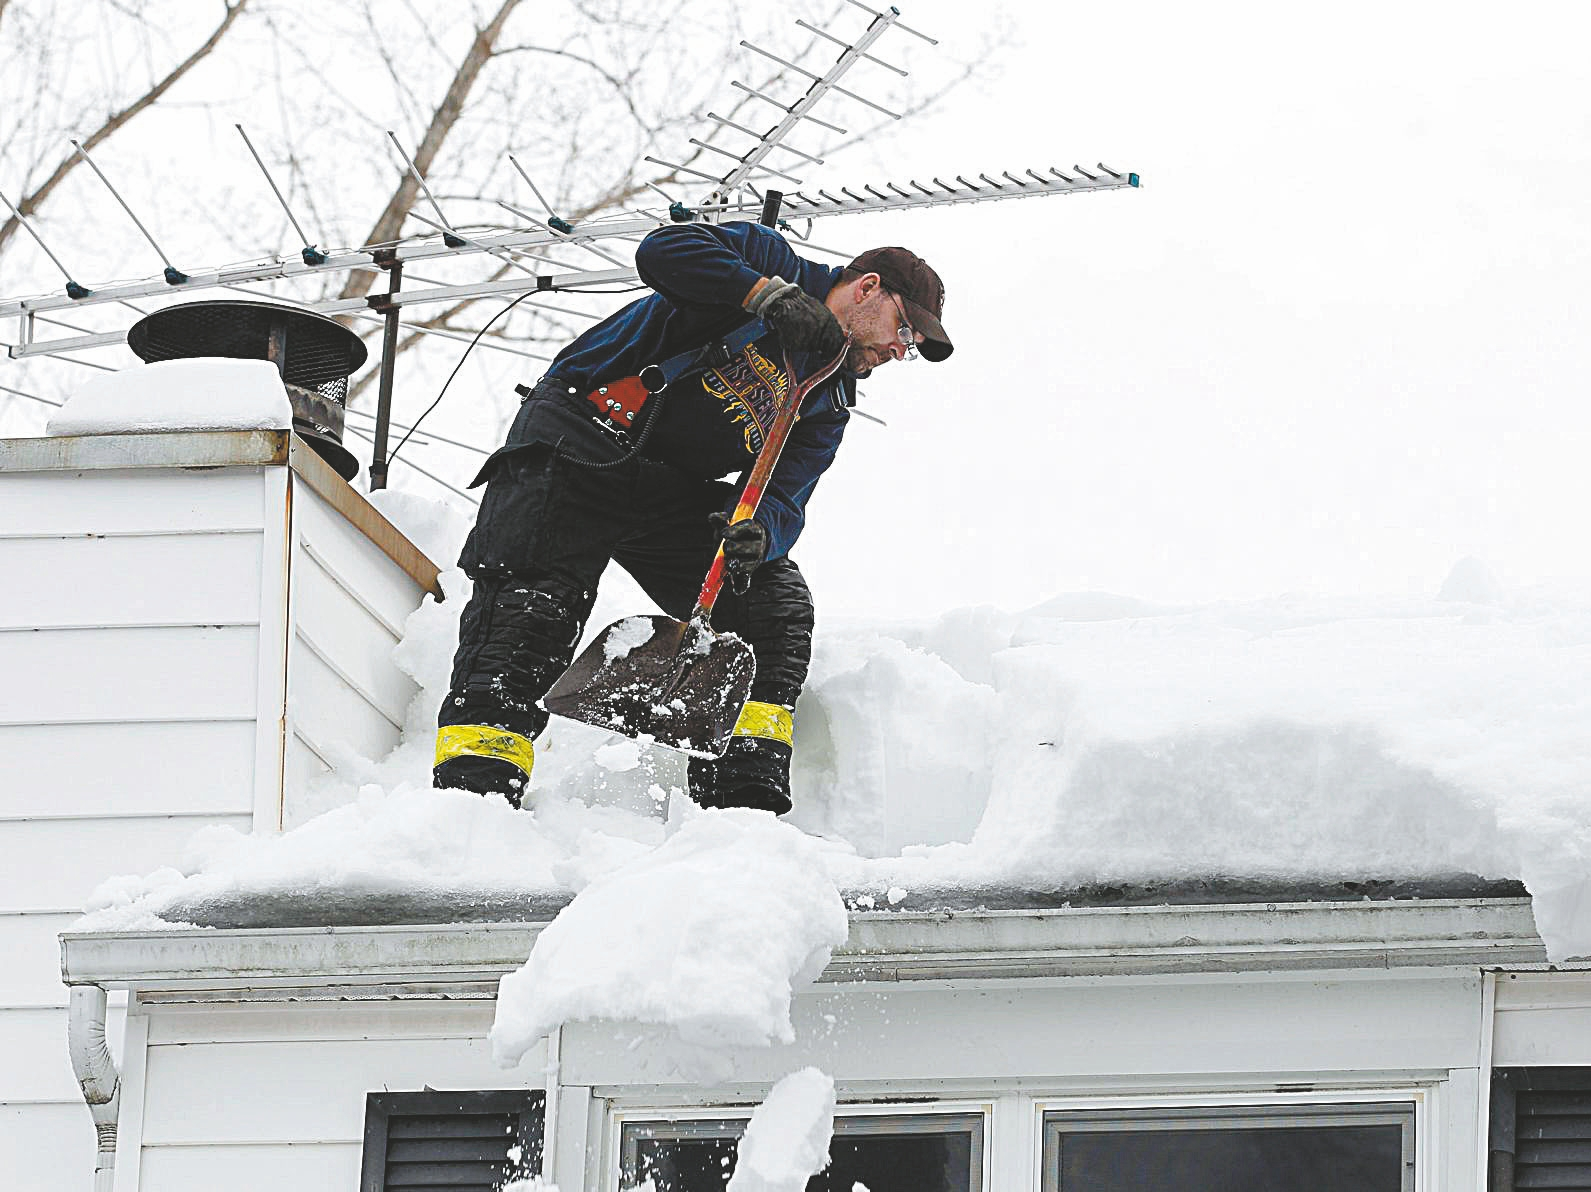 The East Seneca Fire Company responded to the home of one of their elderly members to remove snow from his roof, Sunday, Nov. 23, 2014.  65 year member of the department, Jim Brady, 85, heard creaking at his home on Leydecker Road  and a small section of his barn had already collapsed, so he called the fire station. (Sharon Cantillon/Buffalo News)